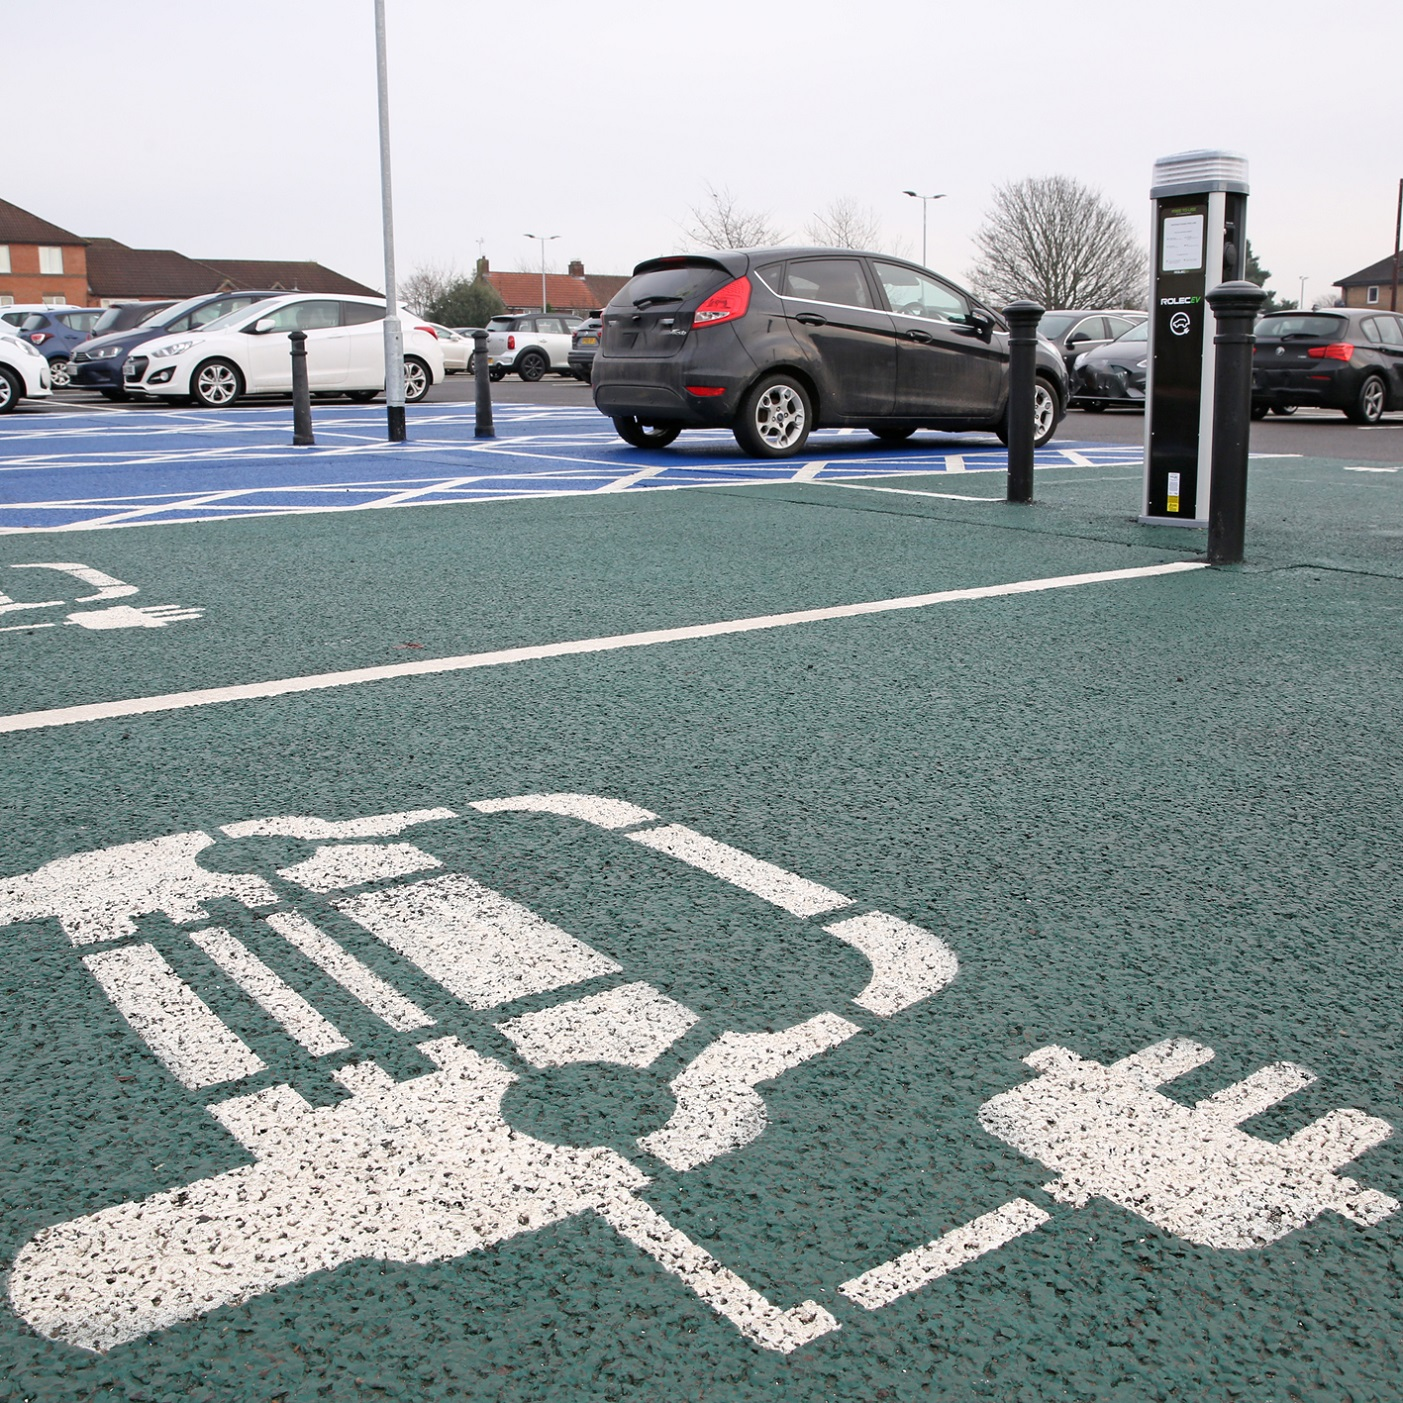 ELECTRIC VEHICLE CHARGING POINTS INTRODUCED IN CAR PARK REVAMP